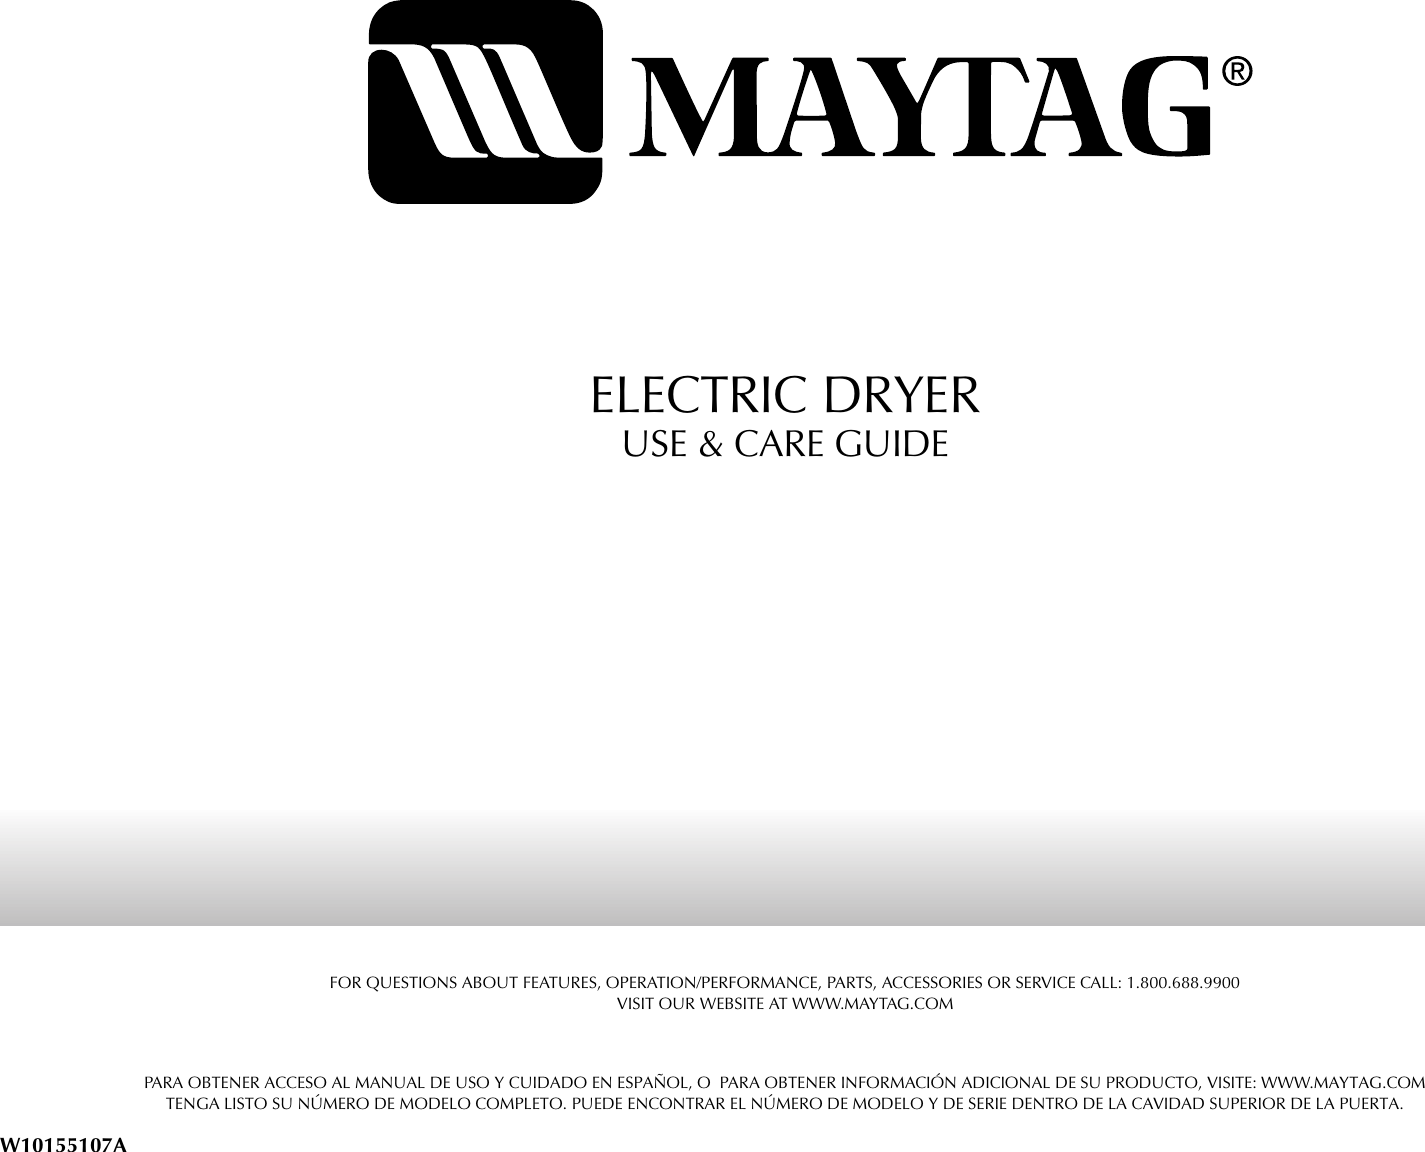 Maytag Med5801tw Users Manual Electric Dryer Parts Diagrams